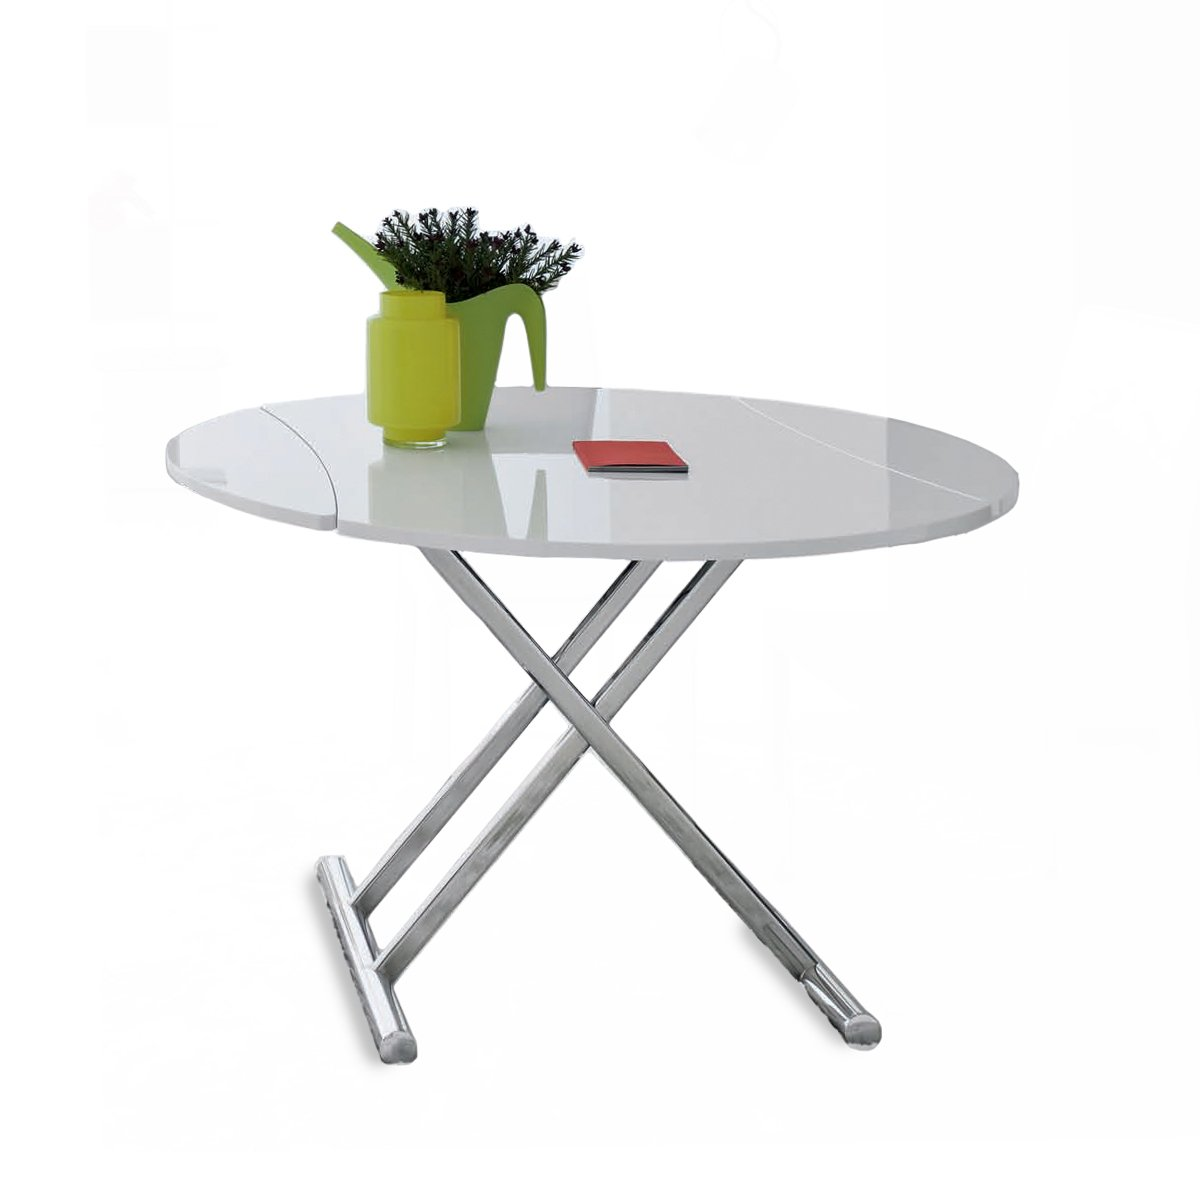 Table basse relevable ronde nice meubles et atmosph re - Table relevable ronde ...